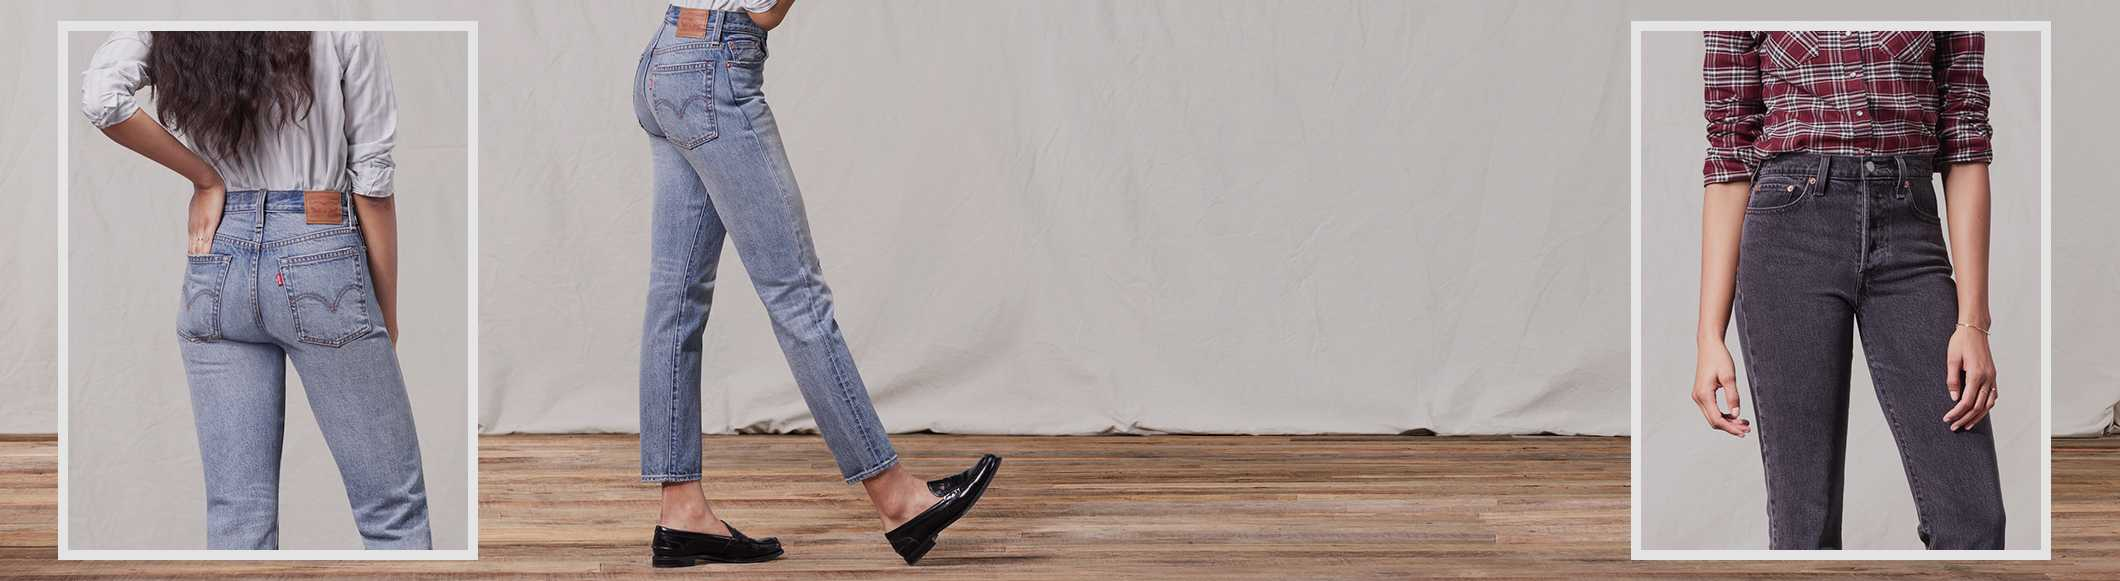 6b3e2a7edff0 Levi's Wedgie Fit Jeans - Shop the Iconic Wedgie Jean | Levi's® US